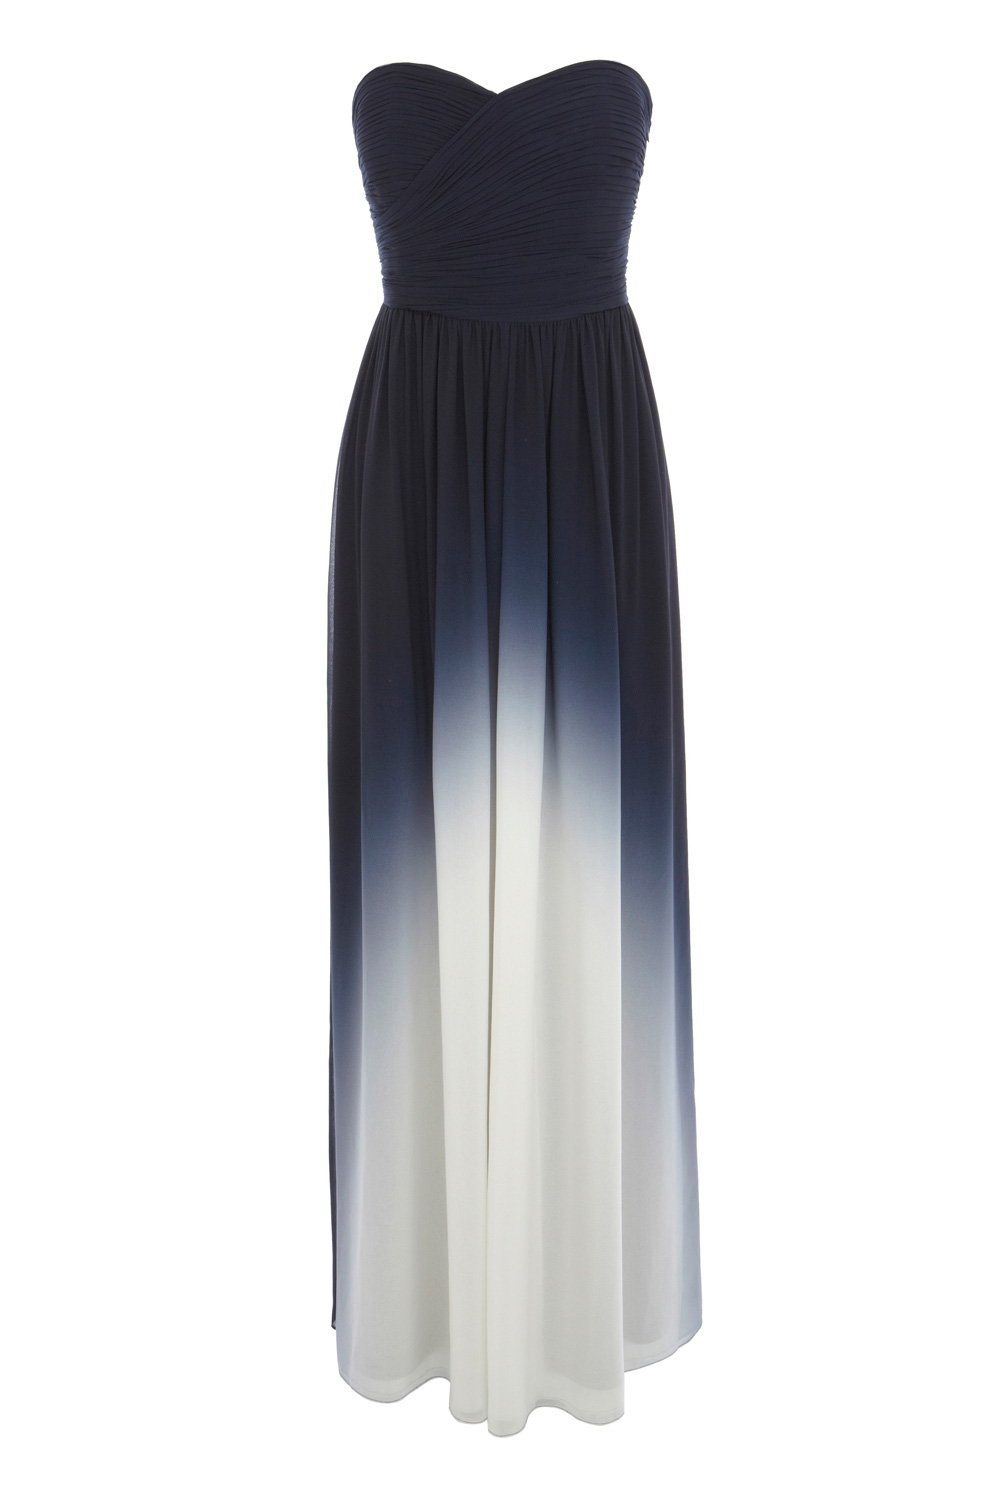 Sale Dresses | Blues SHEENA DIP DYE MAXI  | Coast Stores Limited